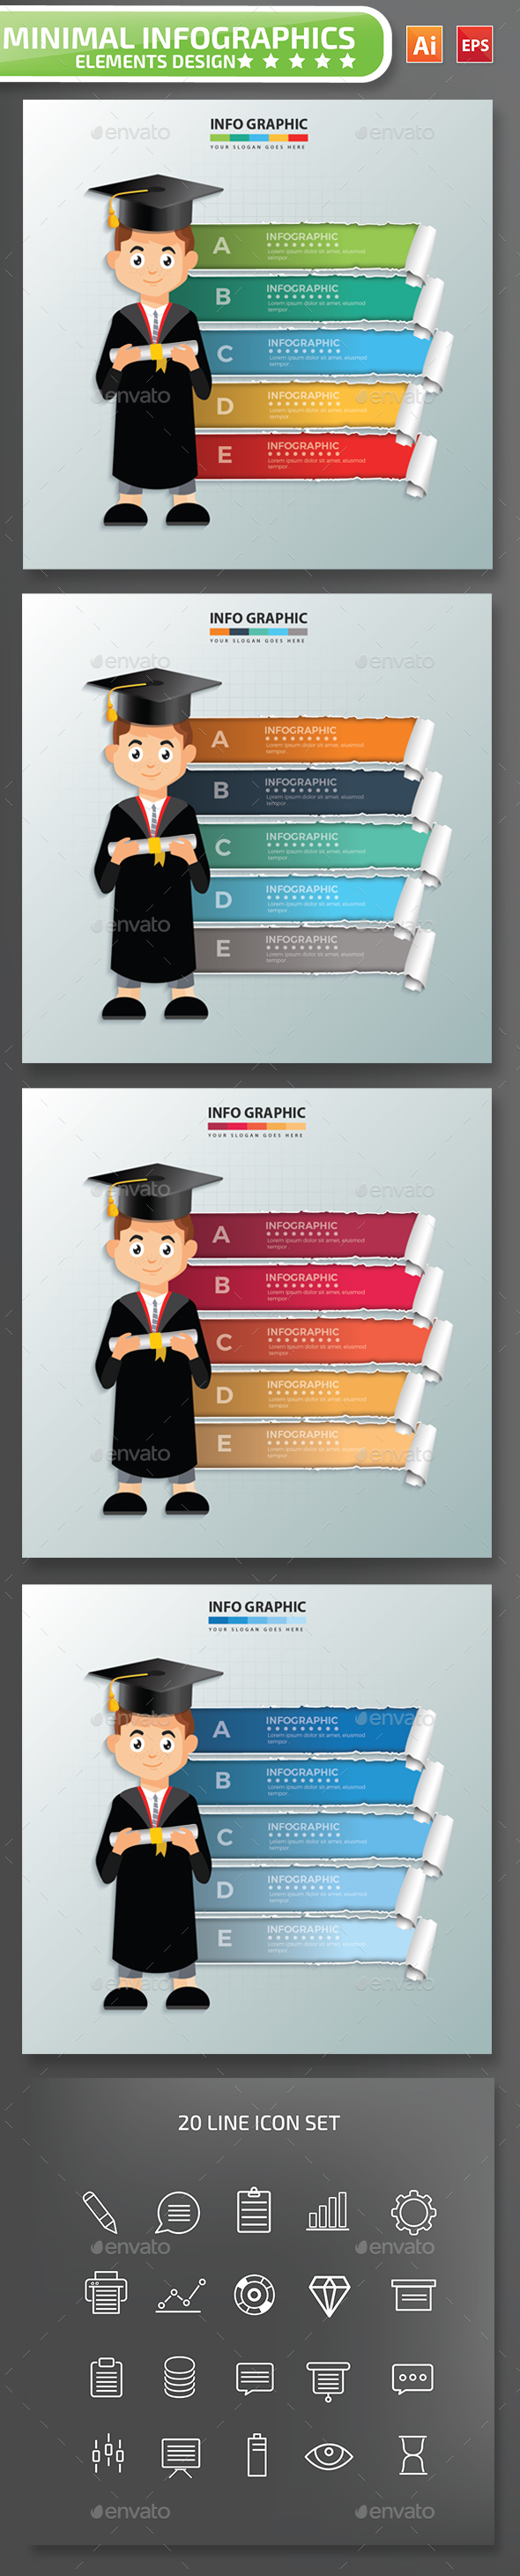 Education Infographic Design - Infographics